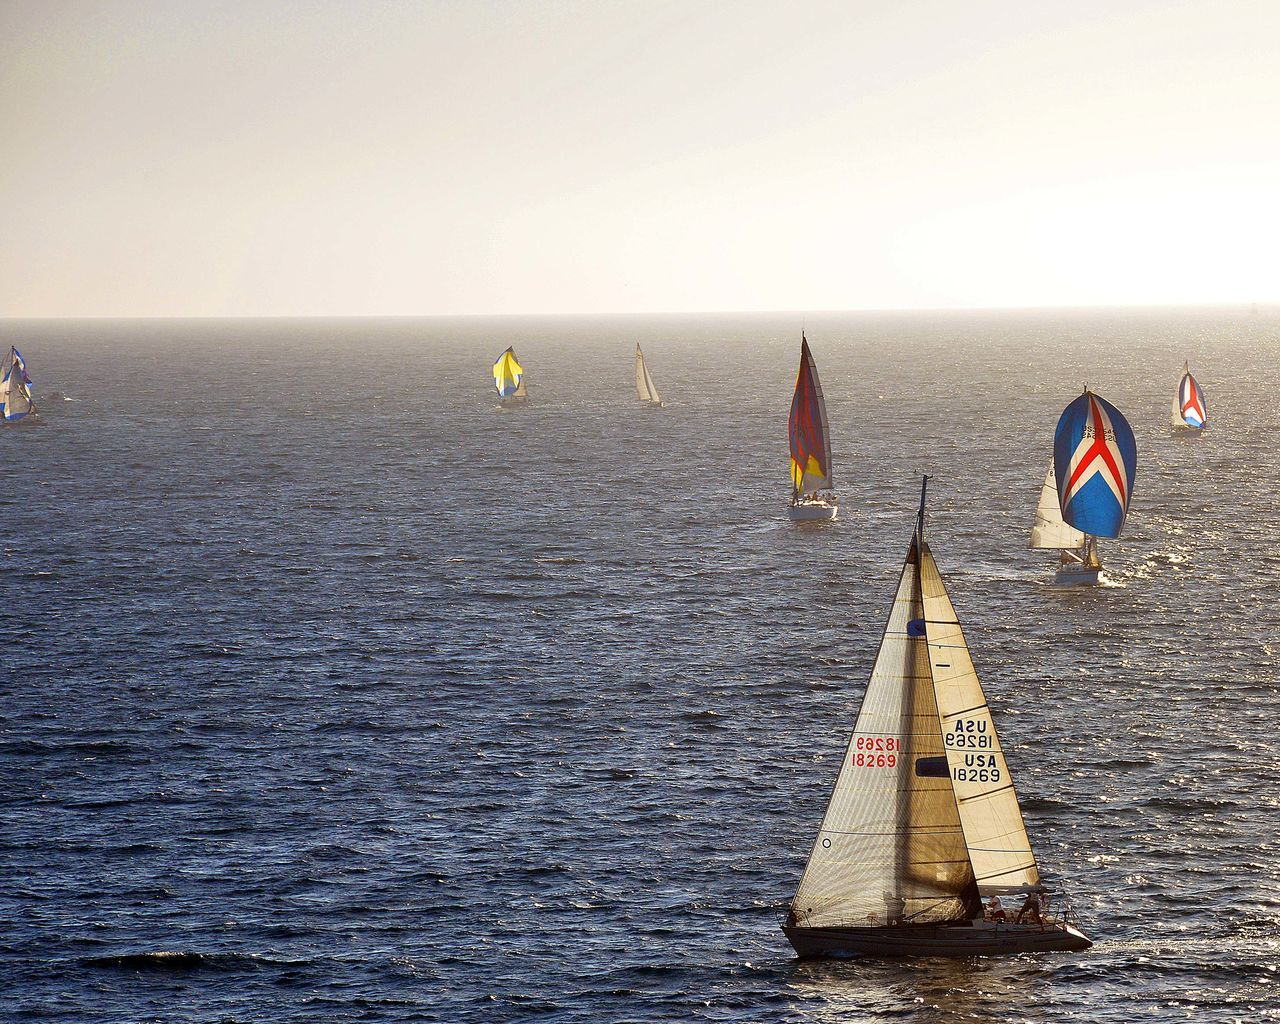 sea, flag, water, horizon over water, sailboat, tranquility, nature, day, transportation, adventure, no people, sky, outdoors, sailing, clear sky, scenics, nautical vessel, beauty in nature